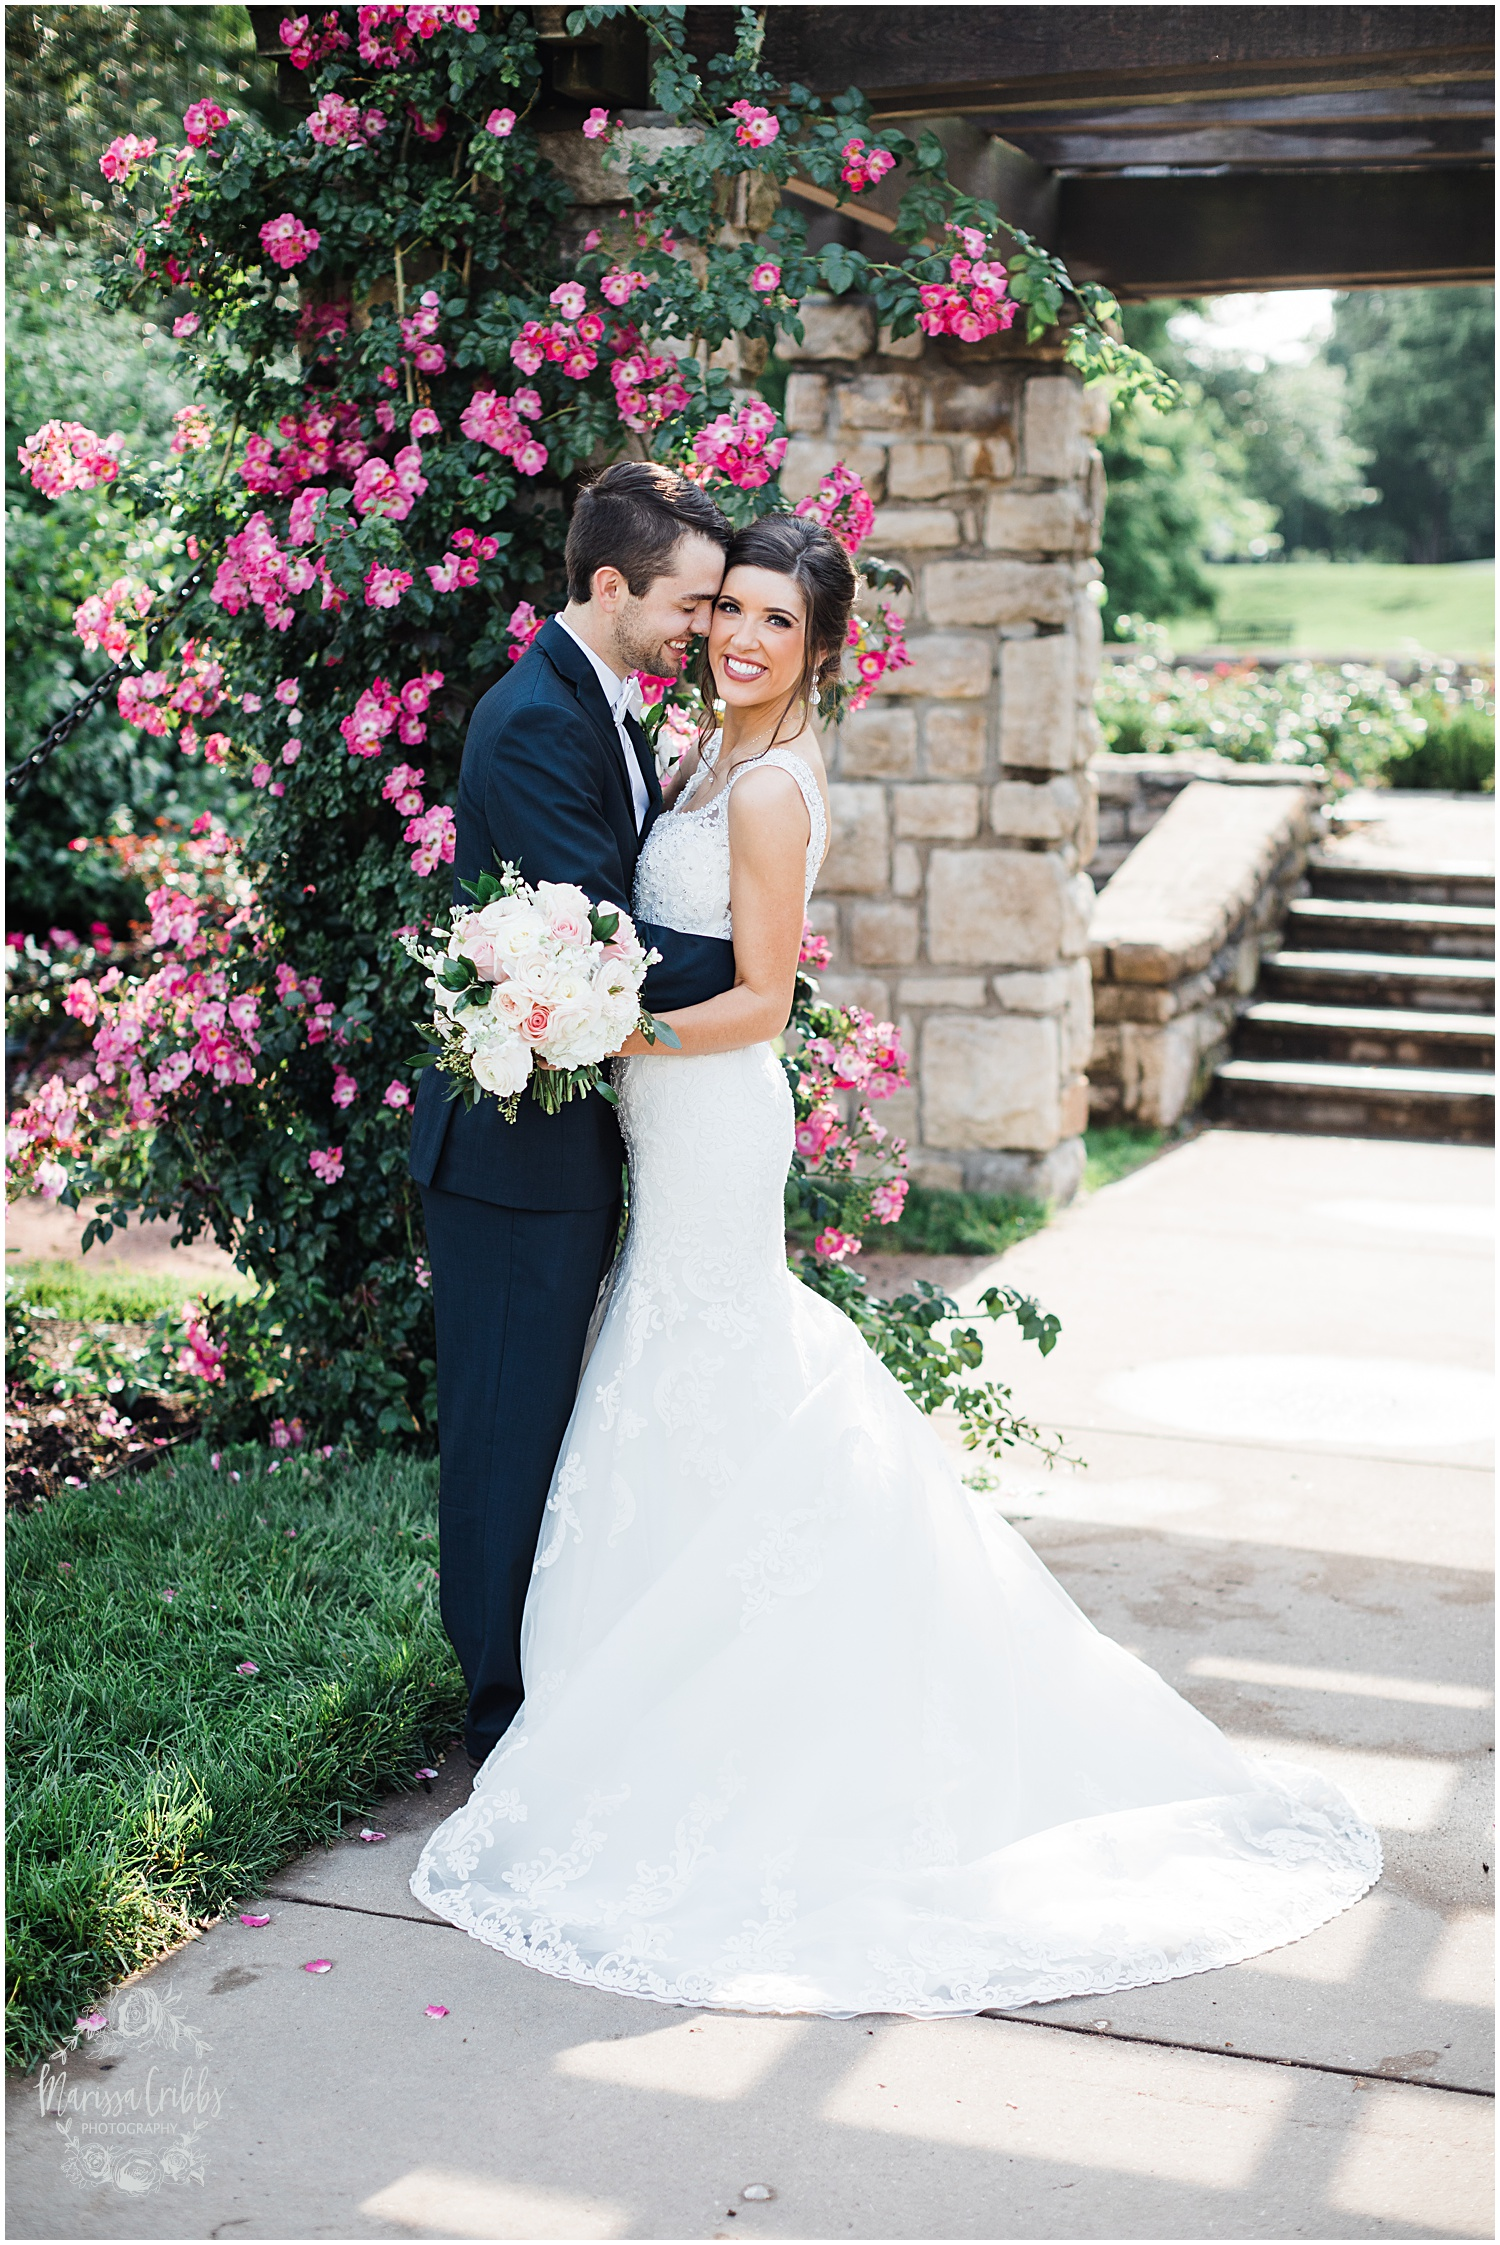 MEGAN & DEREK WEDDING BLOG | MARISSA CRIBBS PHOTOGRAPHY_8177.jpg